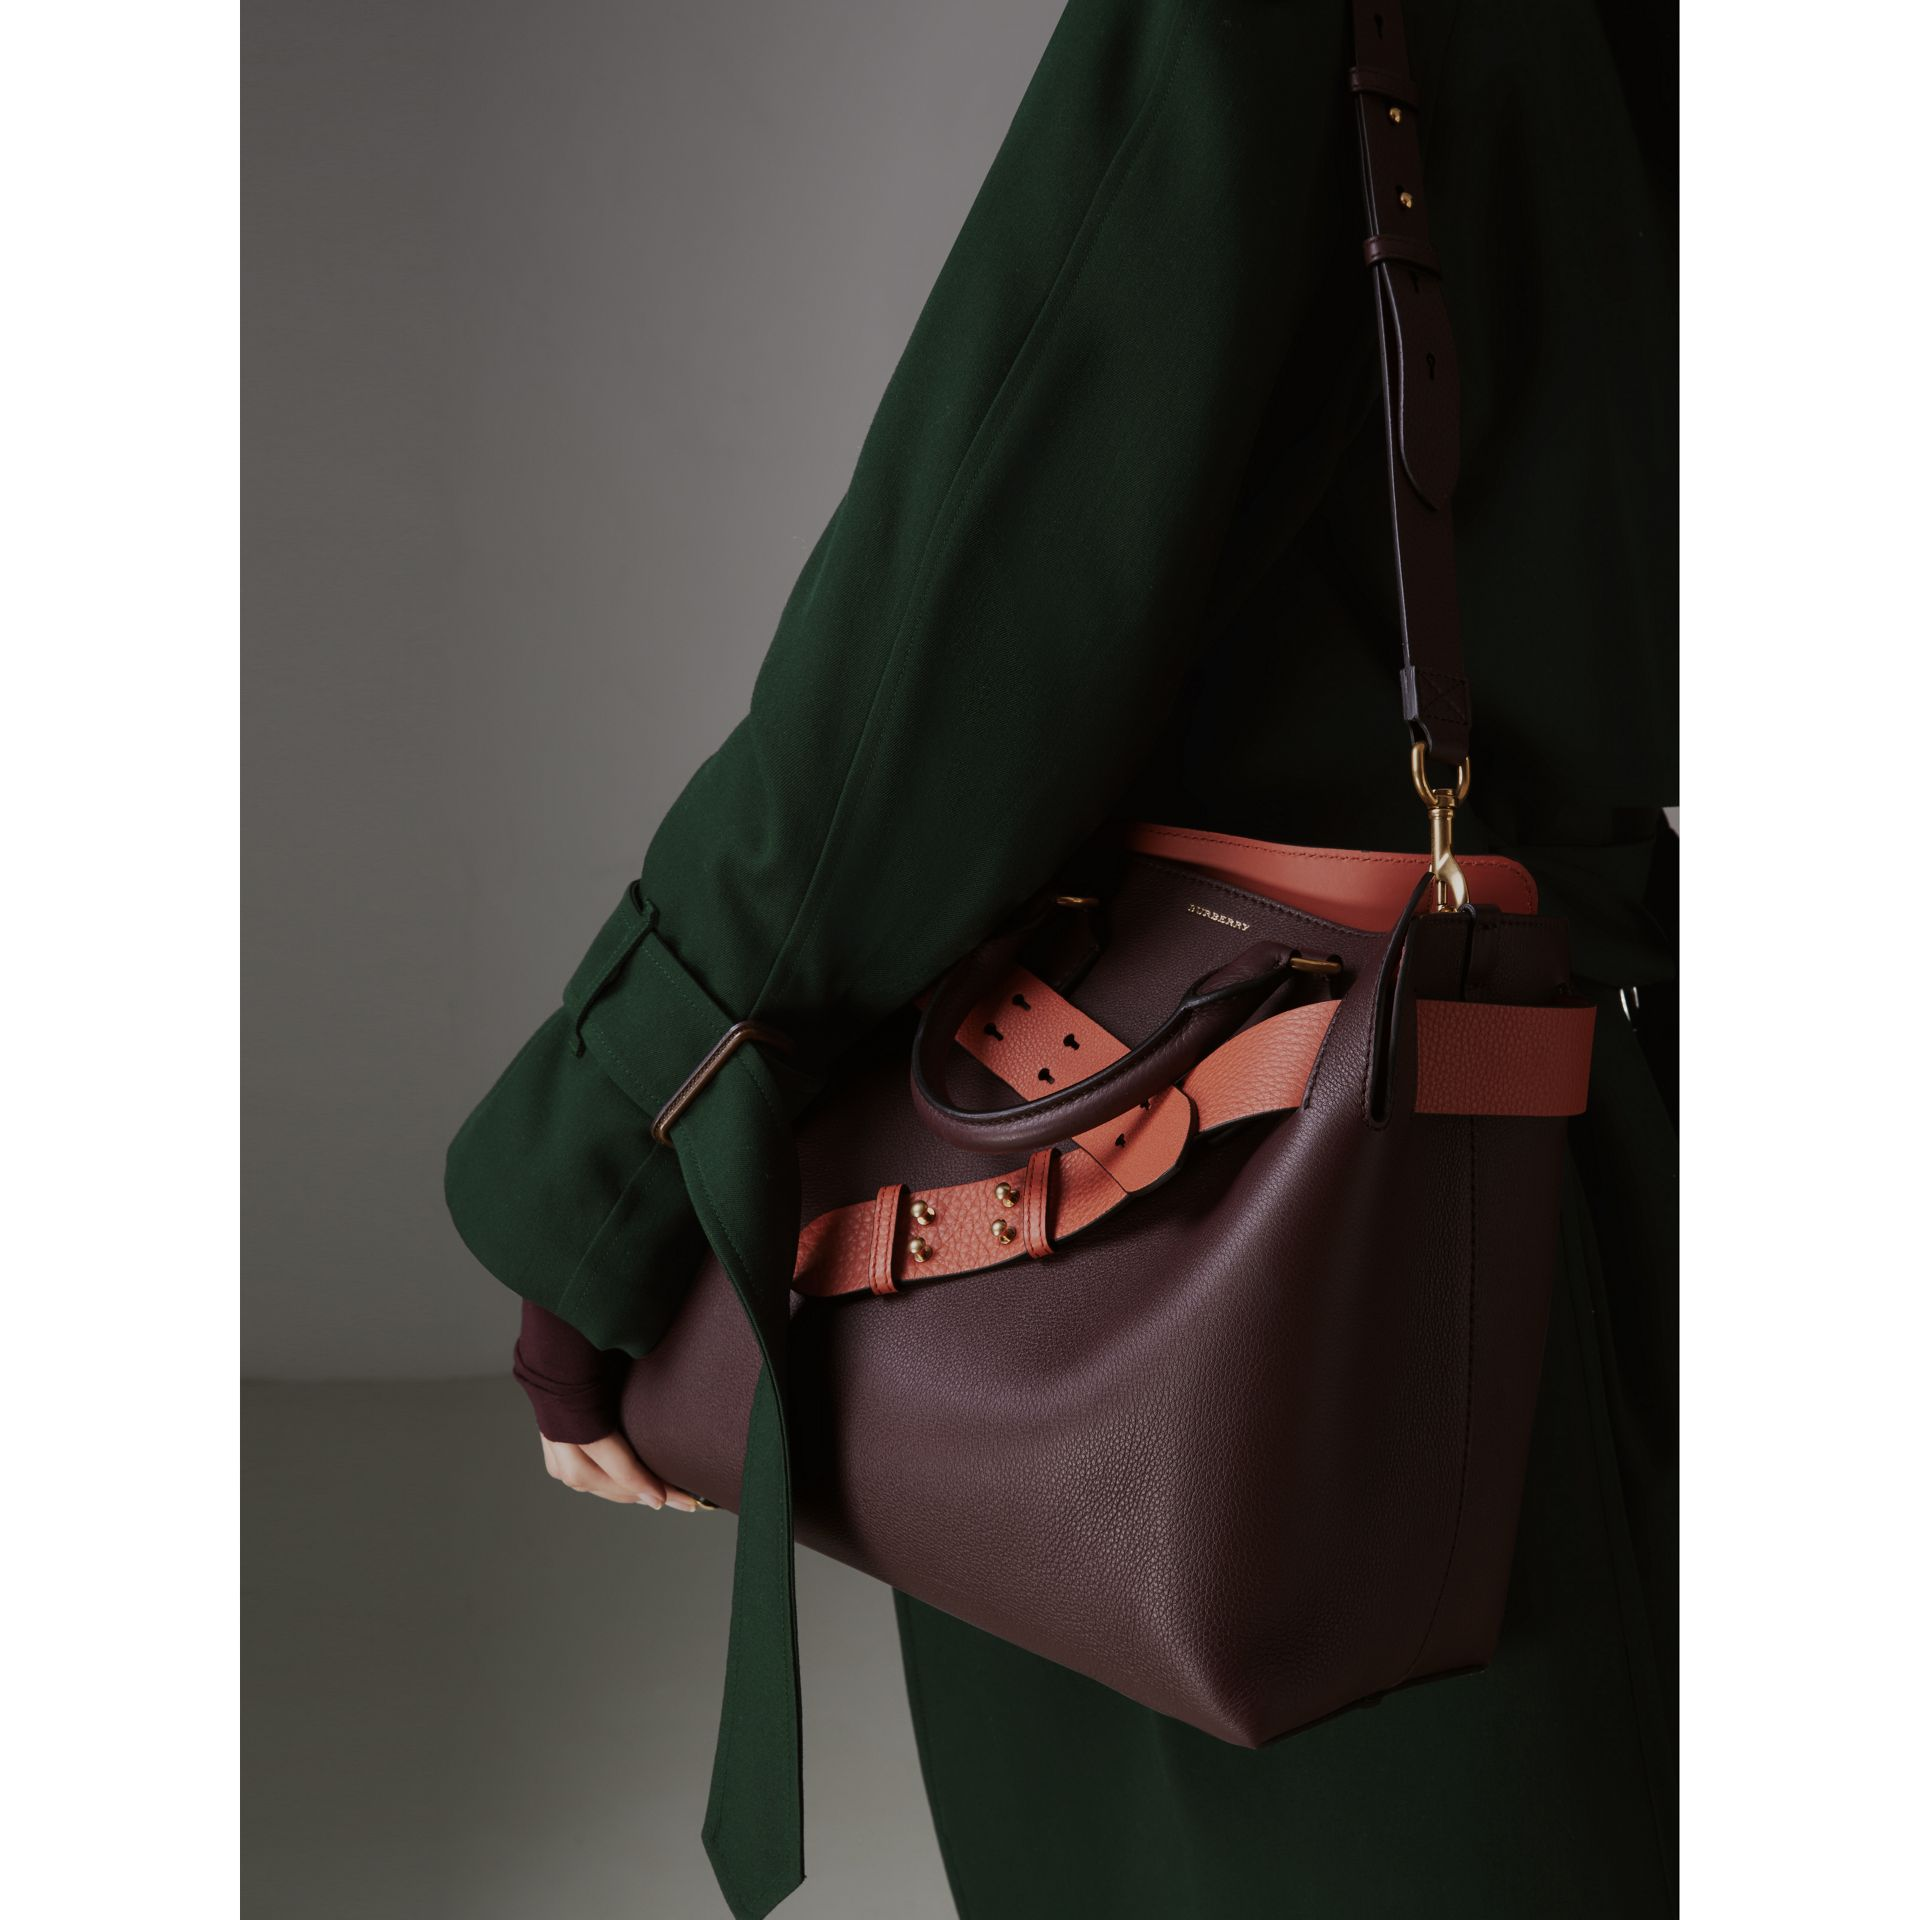 Sac The Belt moyen en cuir (Bordeaux Intense) - Femme | Burberry Canada - photo de la galerie 3